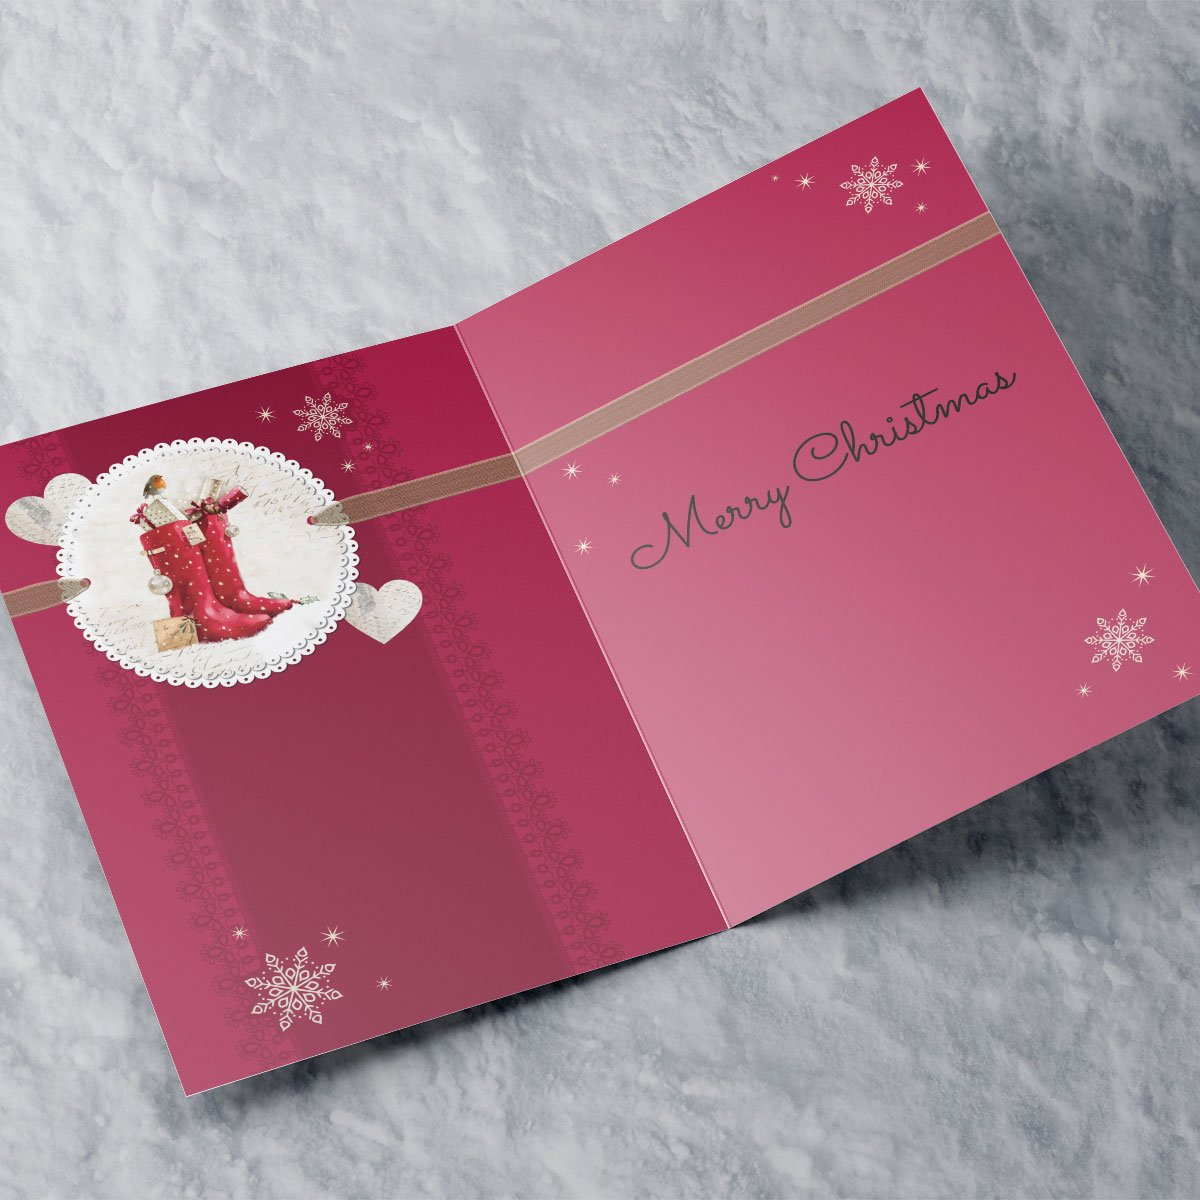 Personalised Christmas Card - Especially For You